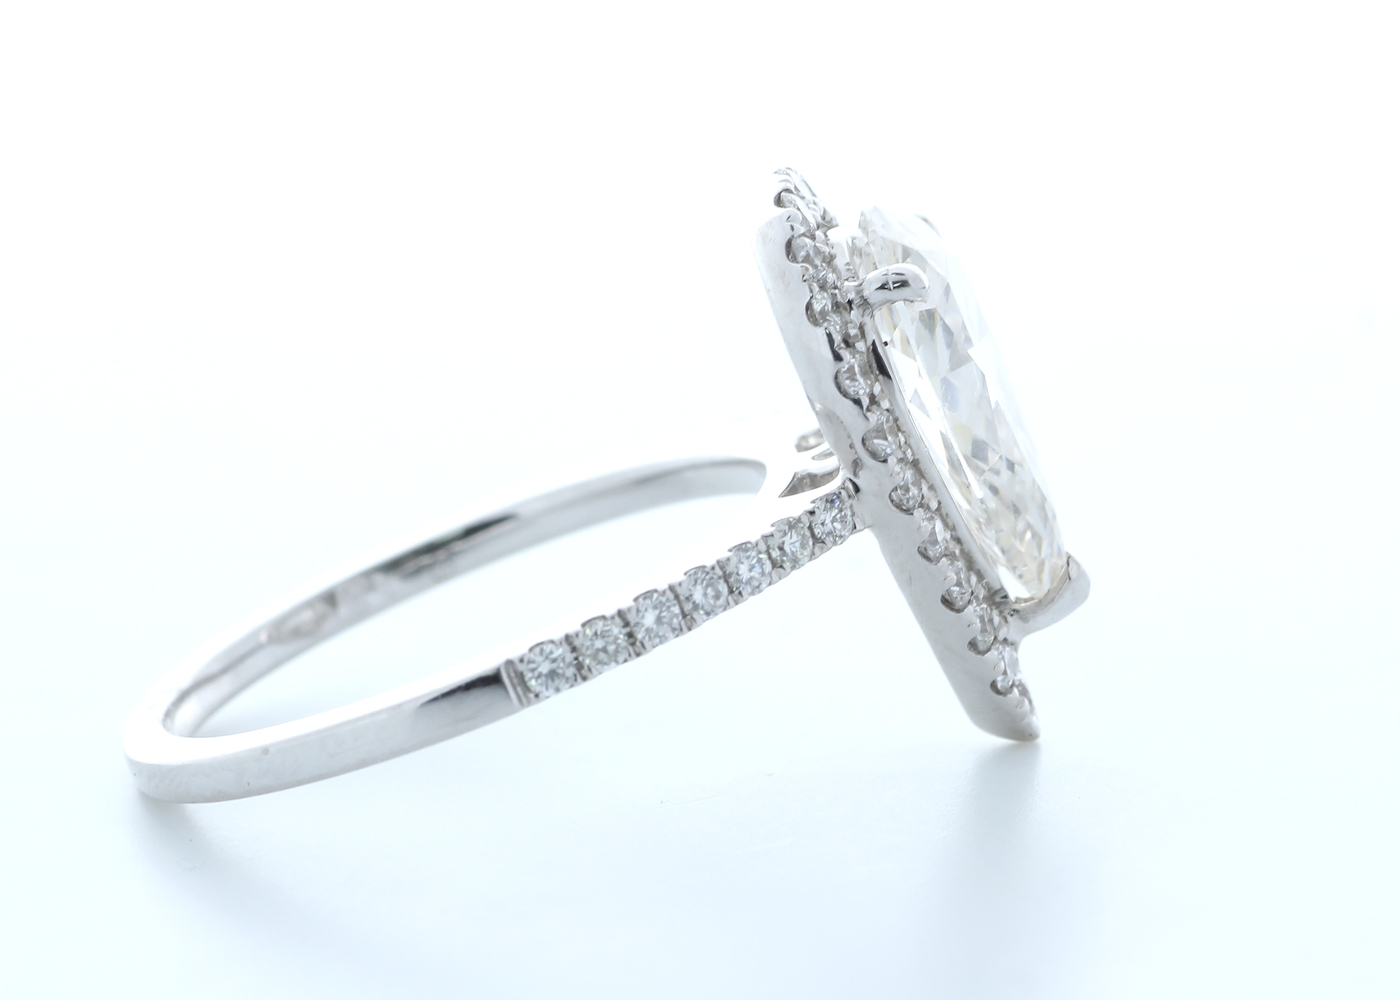 18ct White Gold Single Stone With Halo Setting Ring 2.54 (2.04) Carats - Image 4 of 5